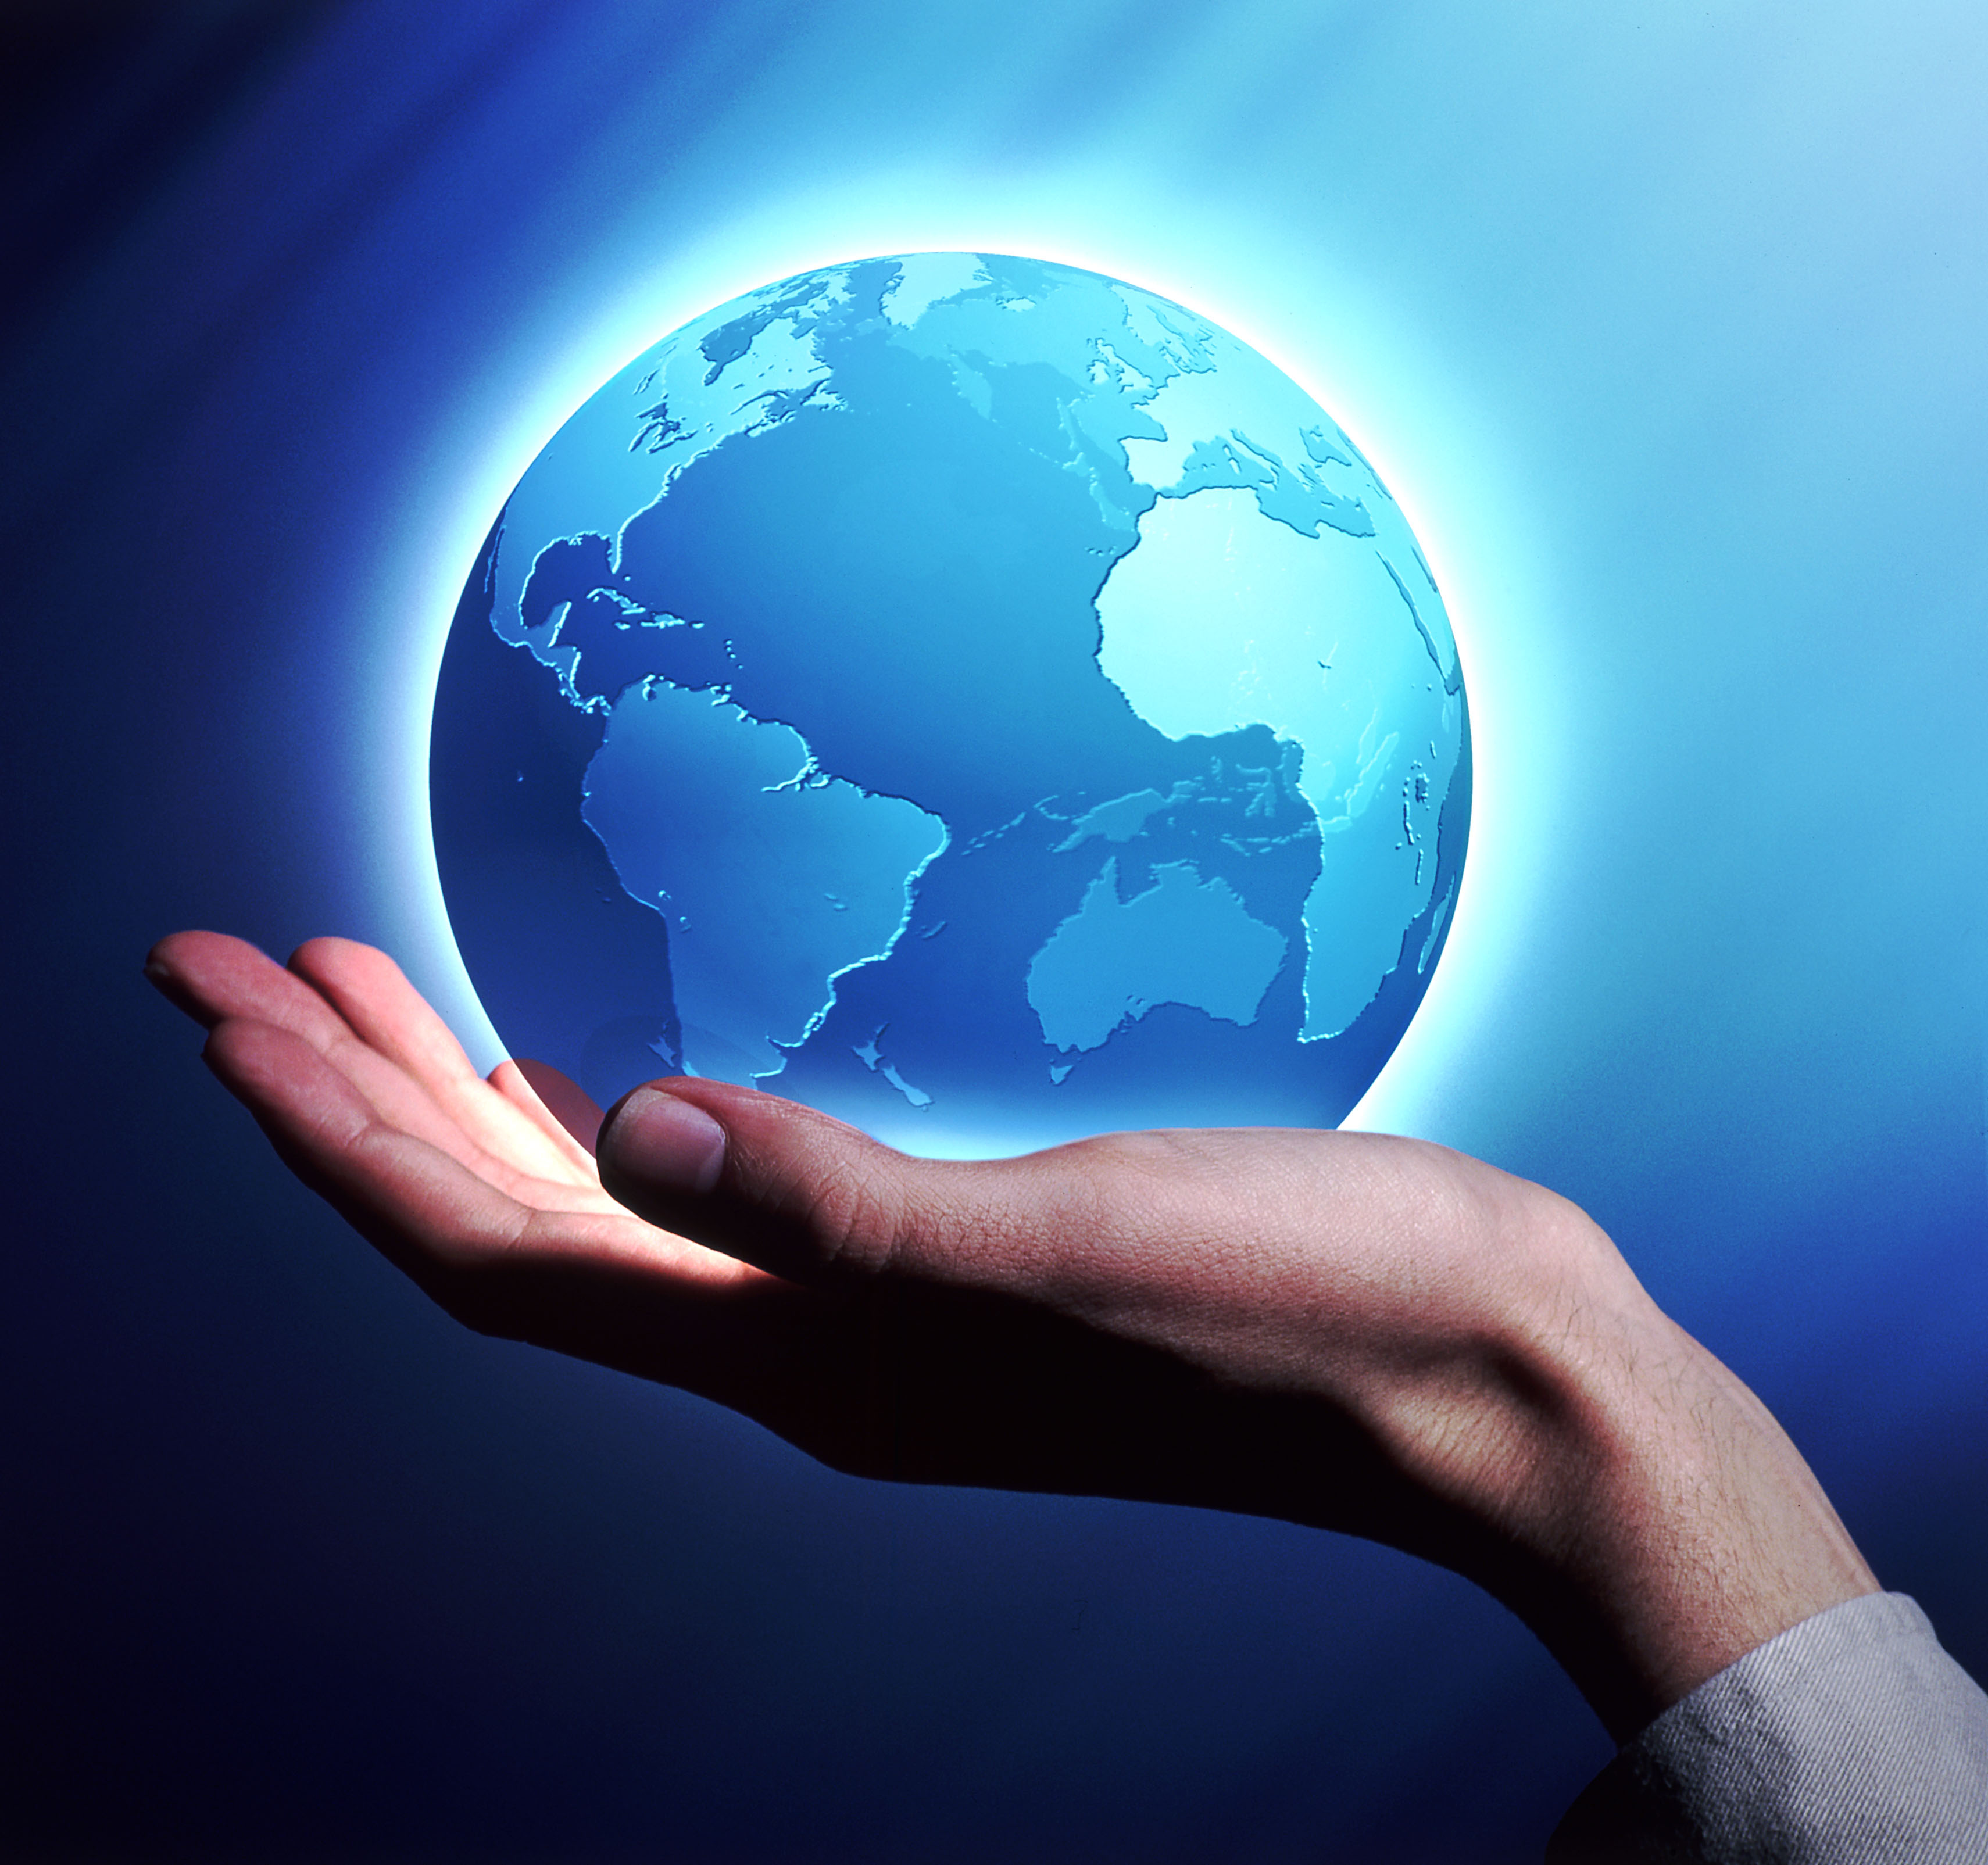 The world in the hand of God